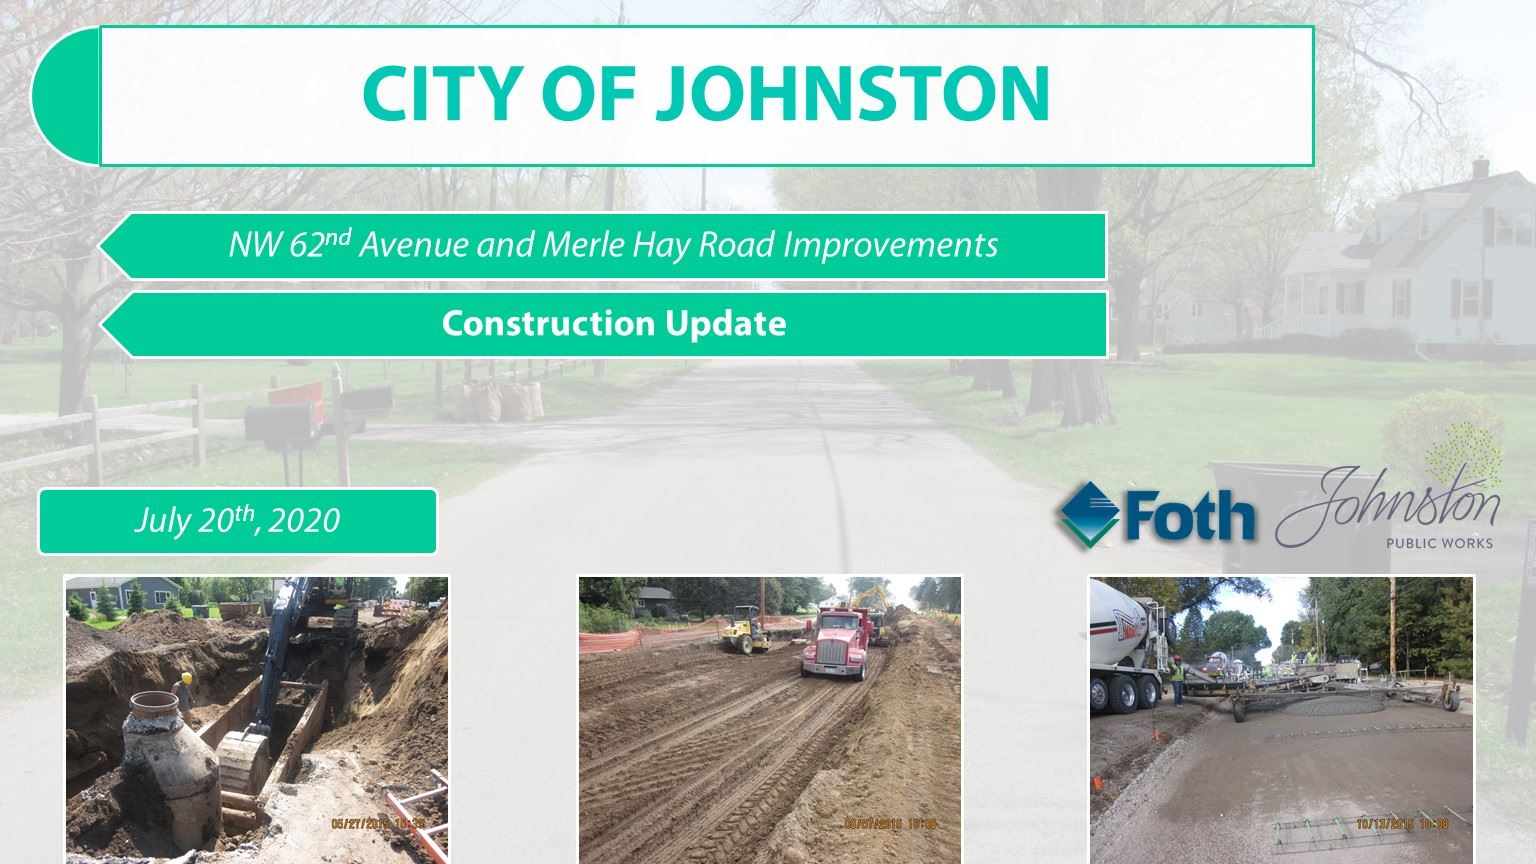 NW 62nd Construction Update